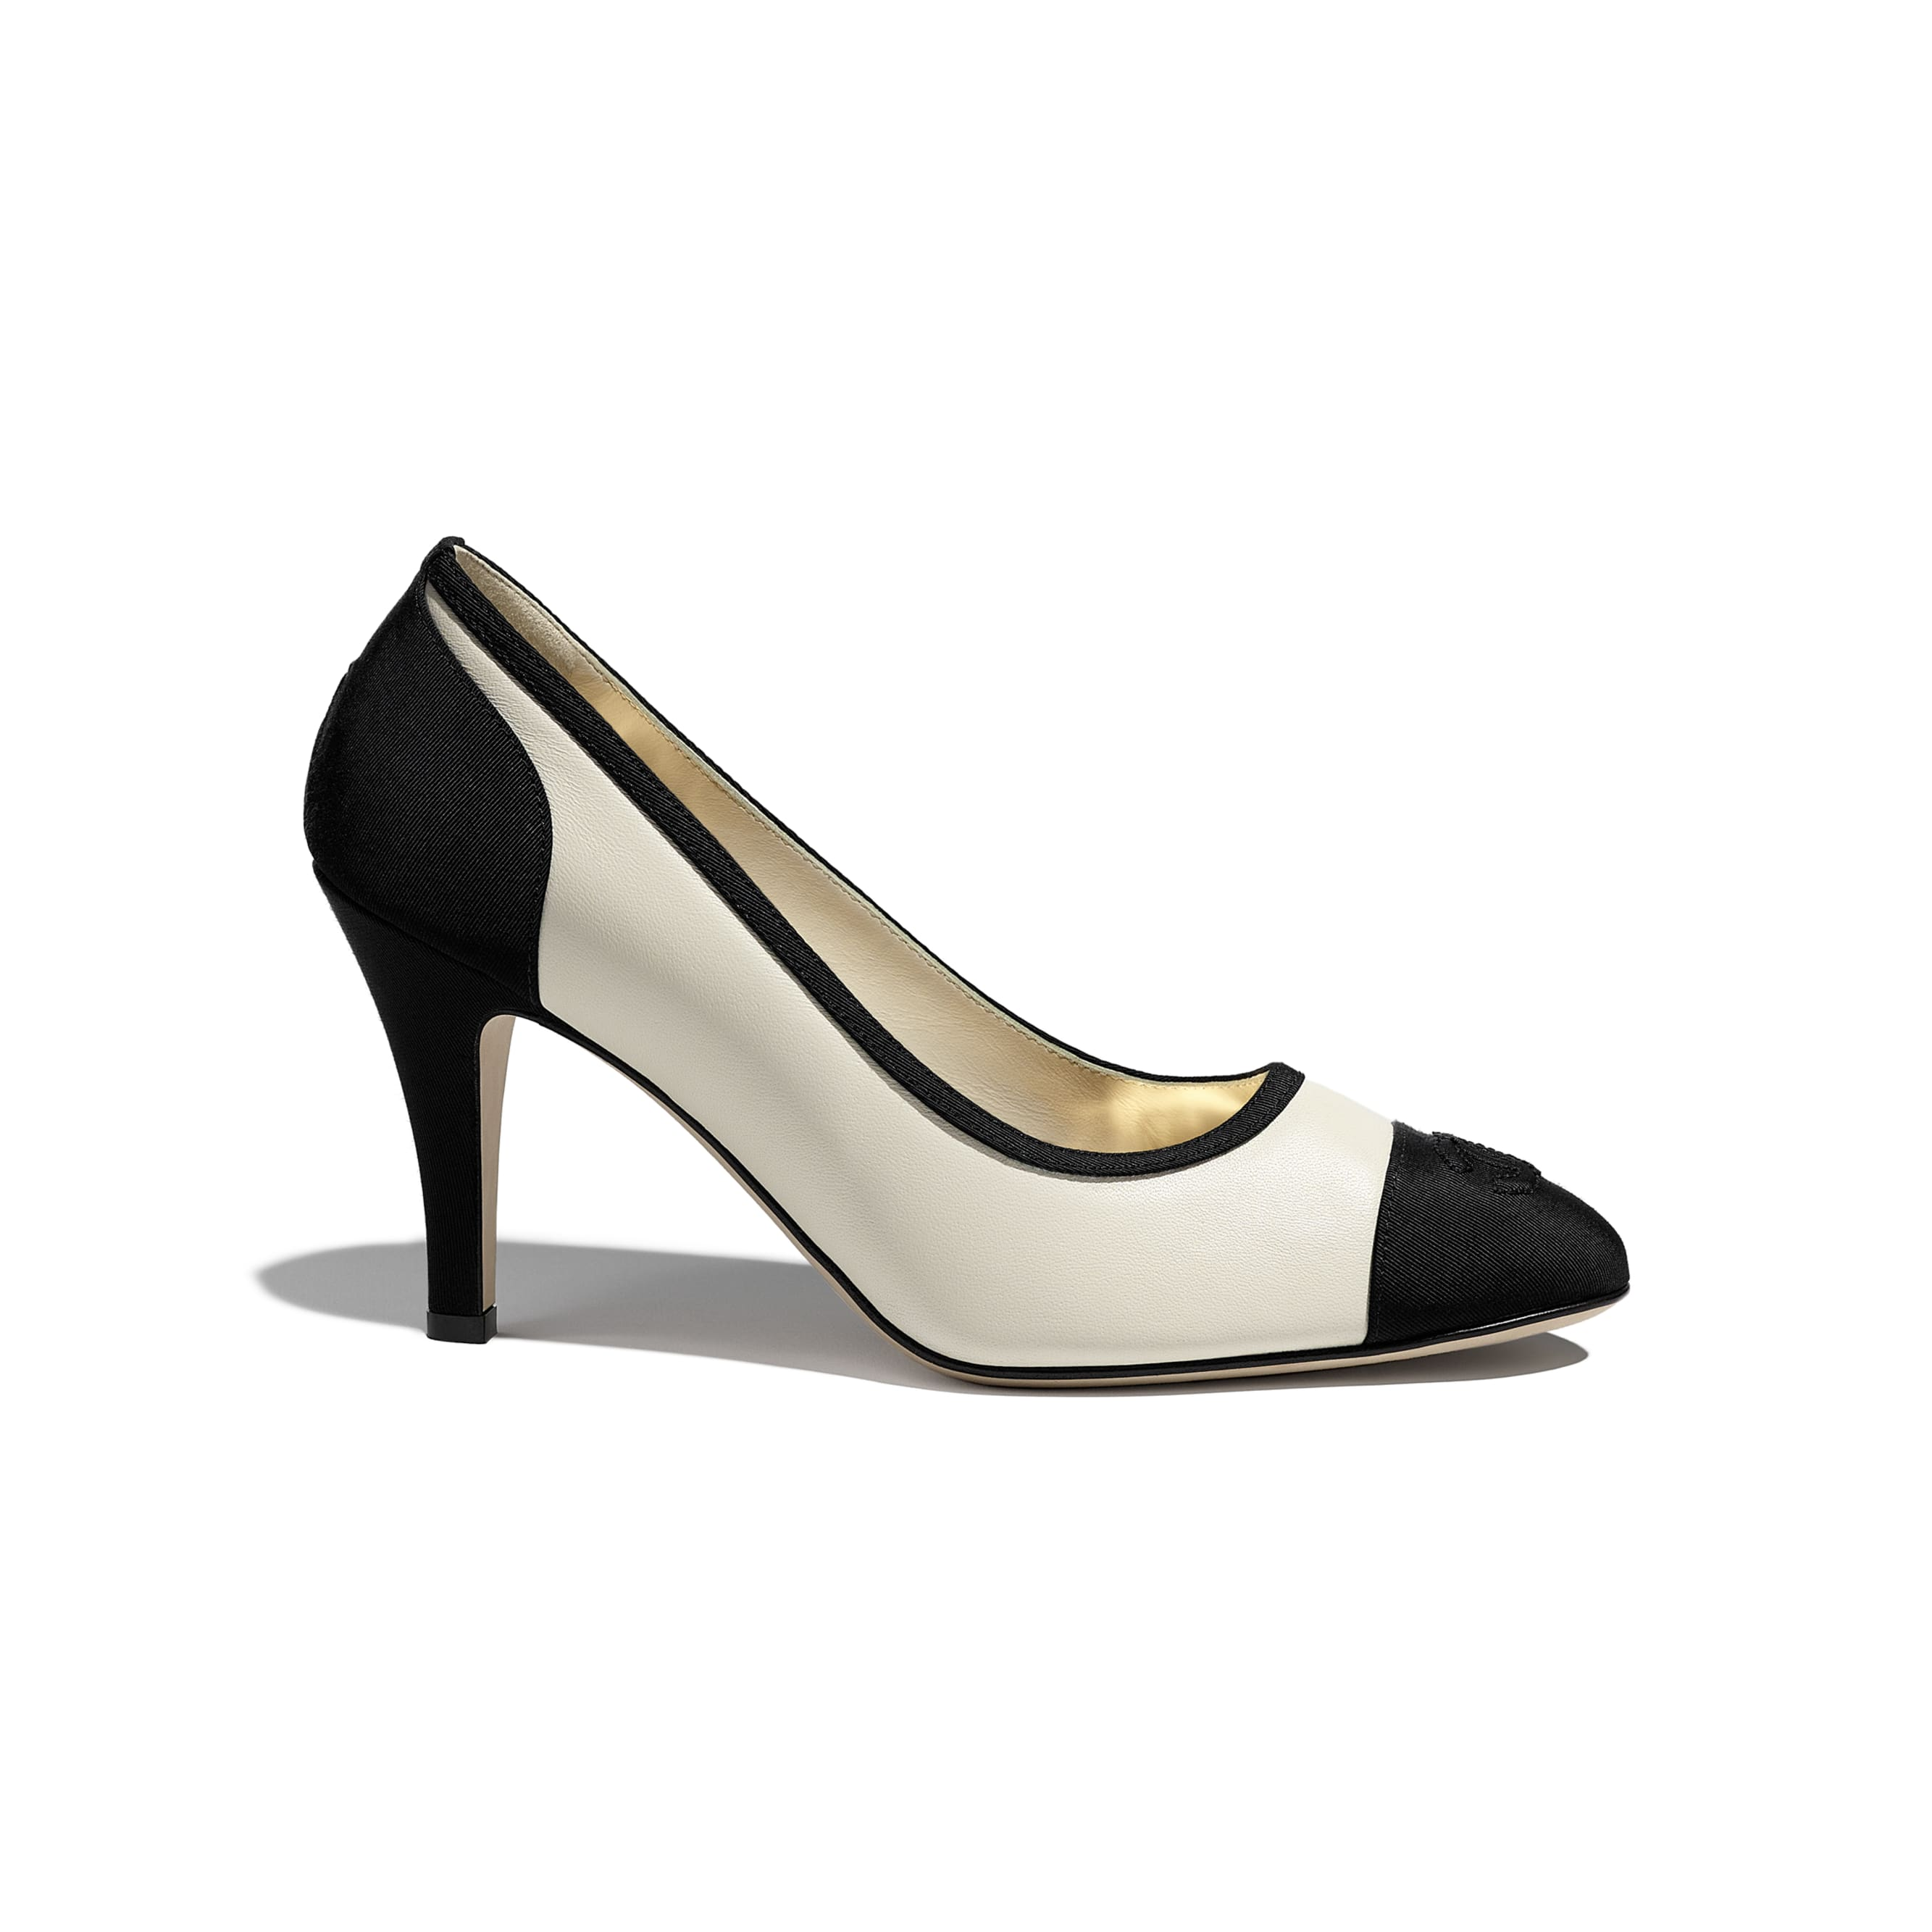 Pumps - Ivory & Black - Lambskin & Grosgrain - CHANEL - Default view - see standard sized version